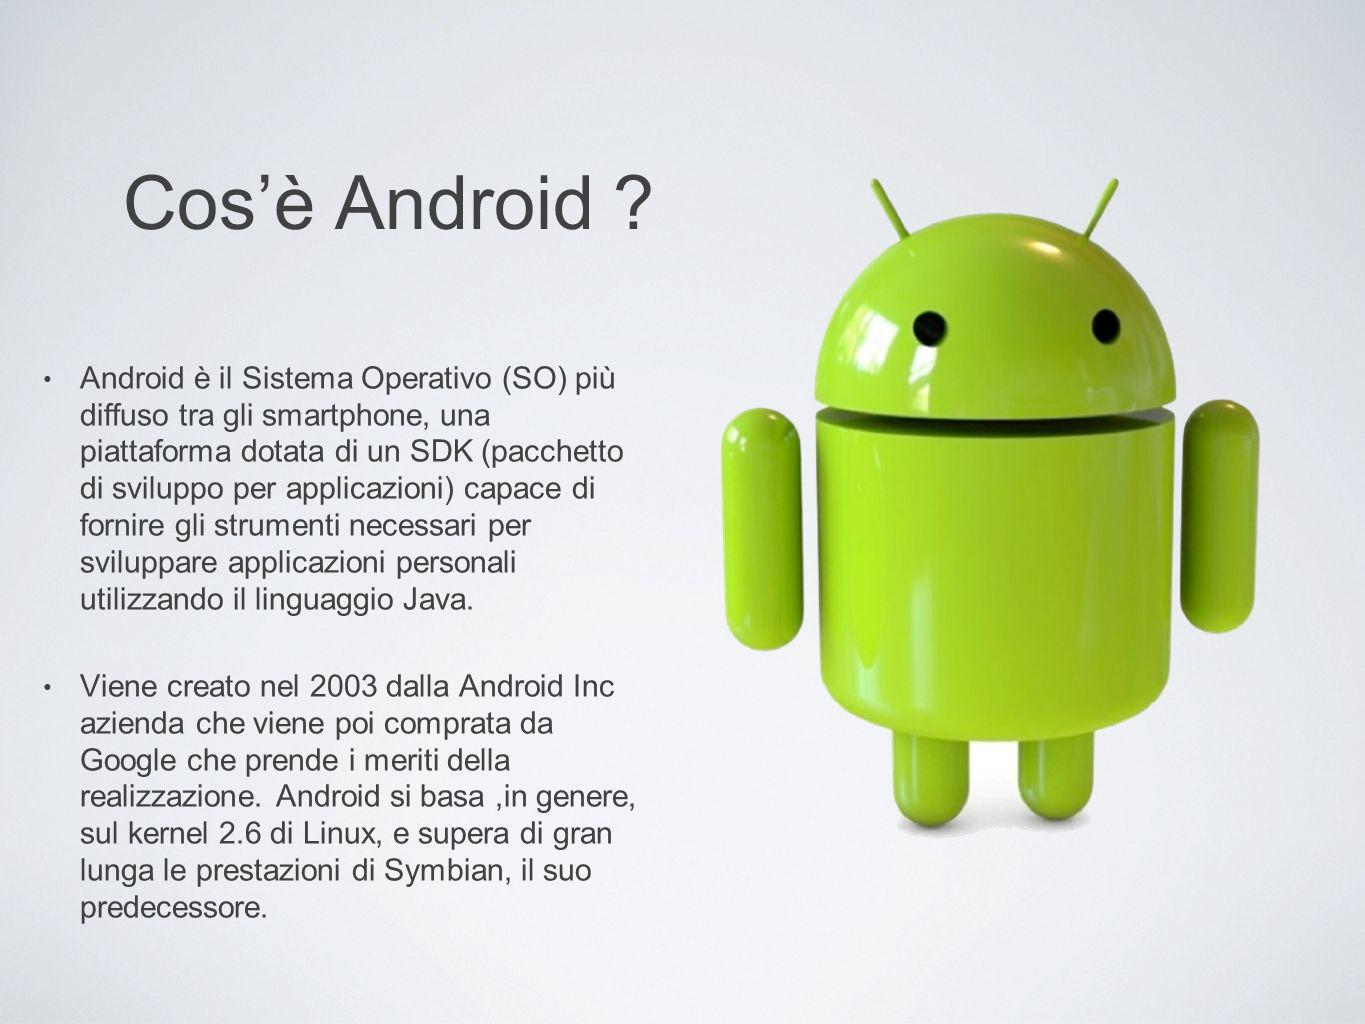 Cos'è Android